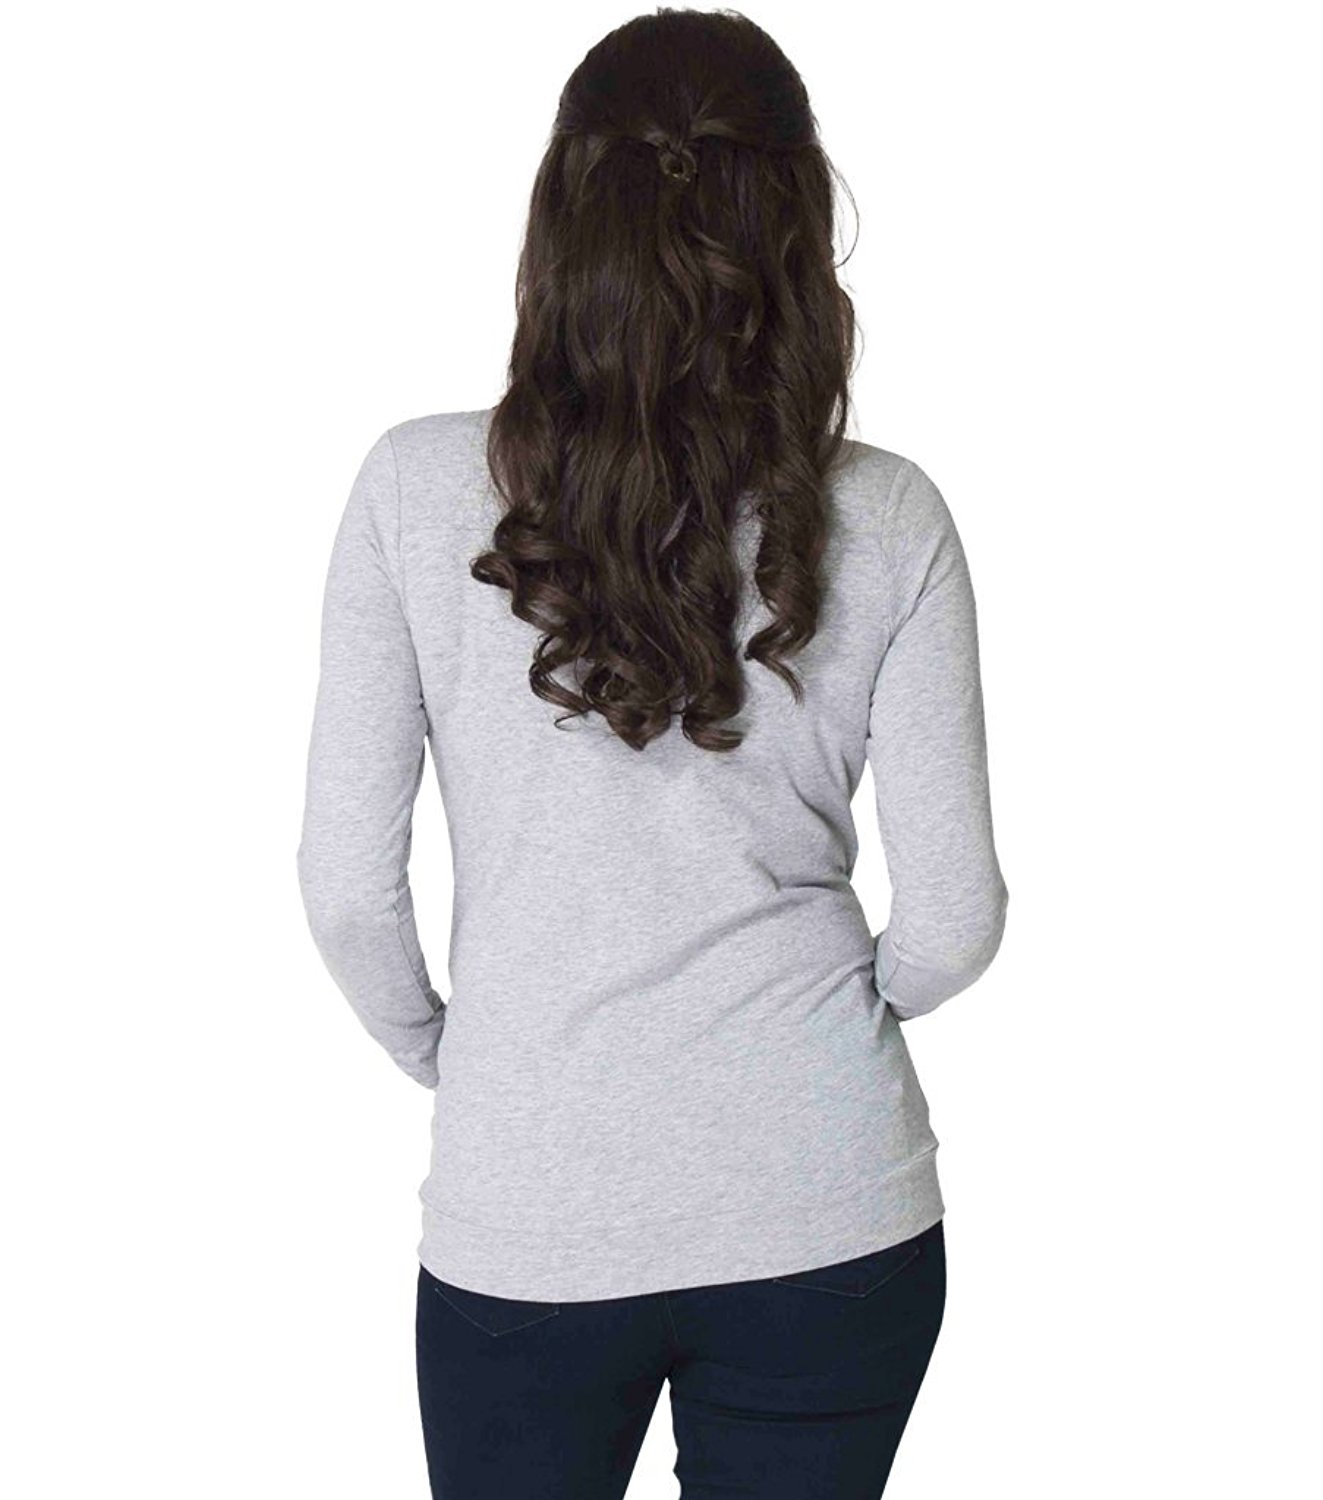 momzelle-sophie-nursing-top-heather-grey-back.jpg